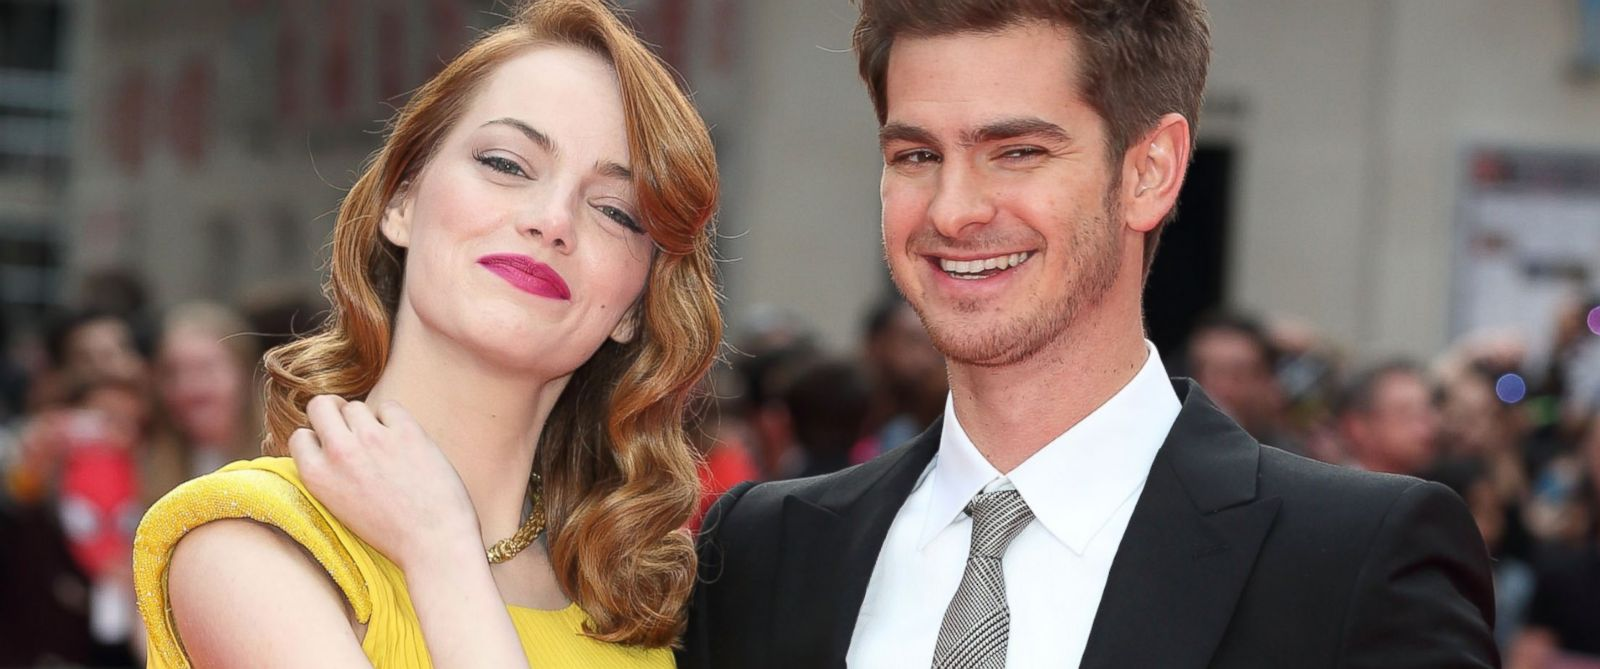 "PHOTO: Emma Stone and Andrew Garfield attend the World Premiere of ""The Amazing Spider-Man 2"" at Odeon Leicester Square on April 10, 2014 in London."